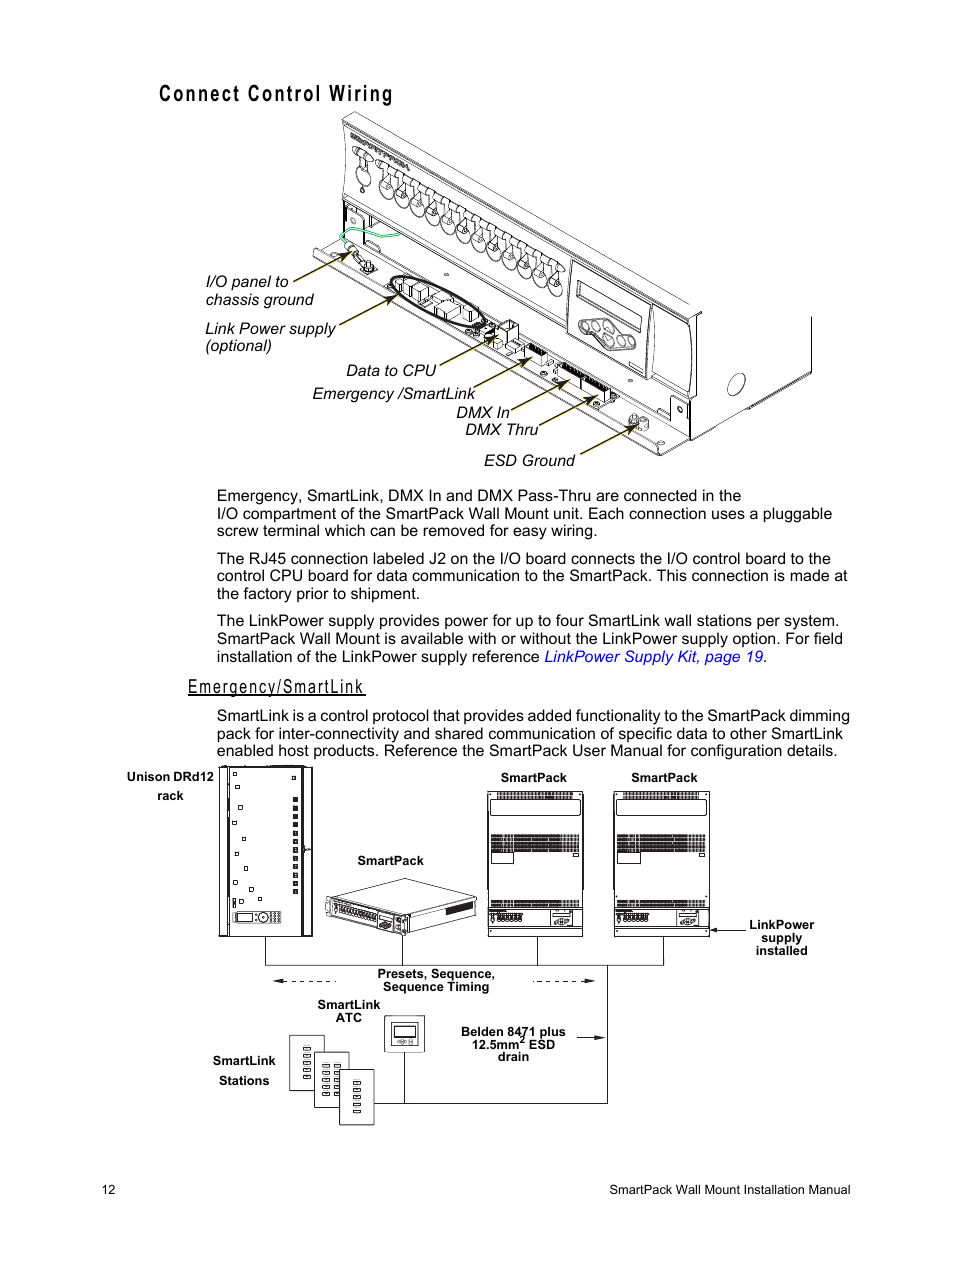 Connect Control Wiring Emergency Smartlink Etc Smartpack Ce Wall Dmx Diagram Mount User Manual Page 14 24